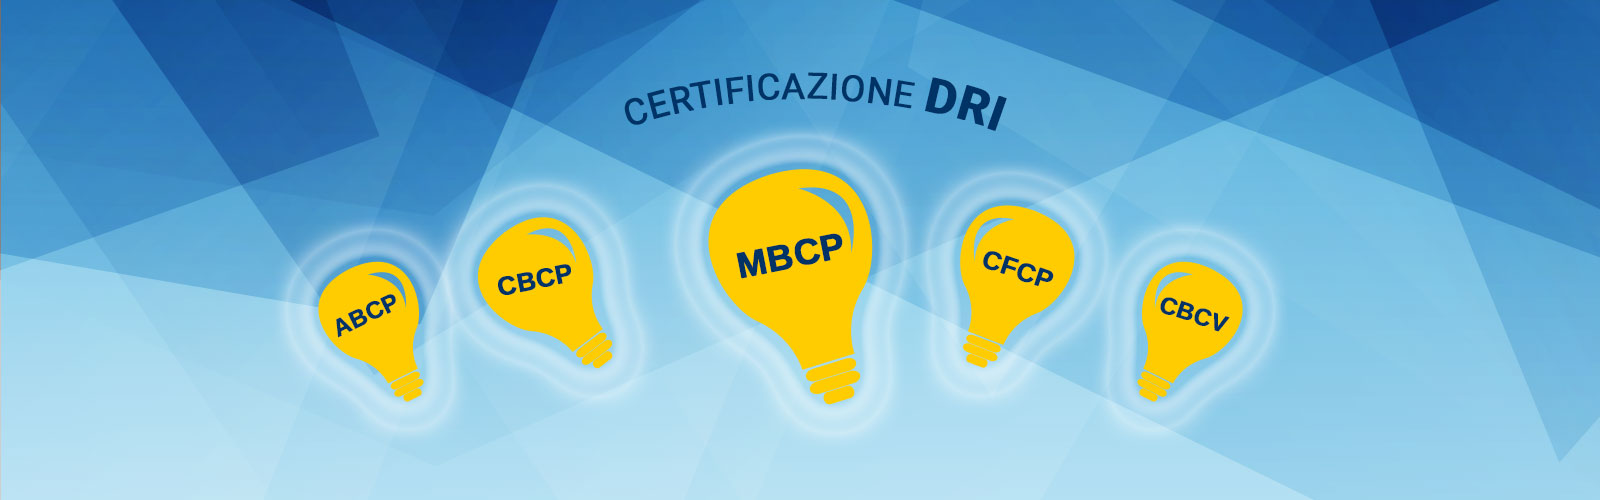 DRI certifications